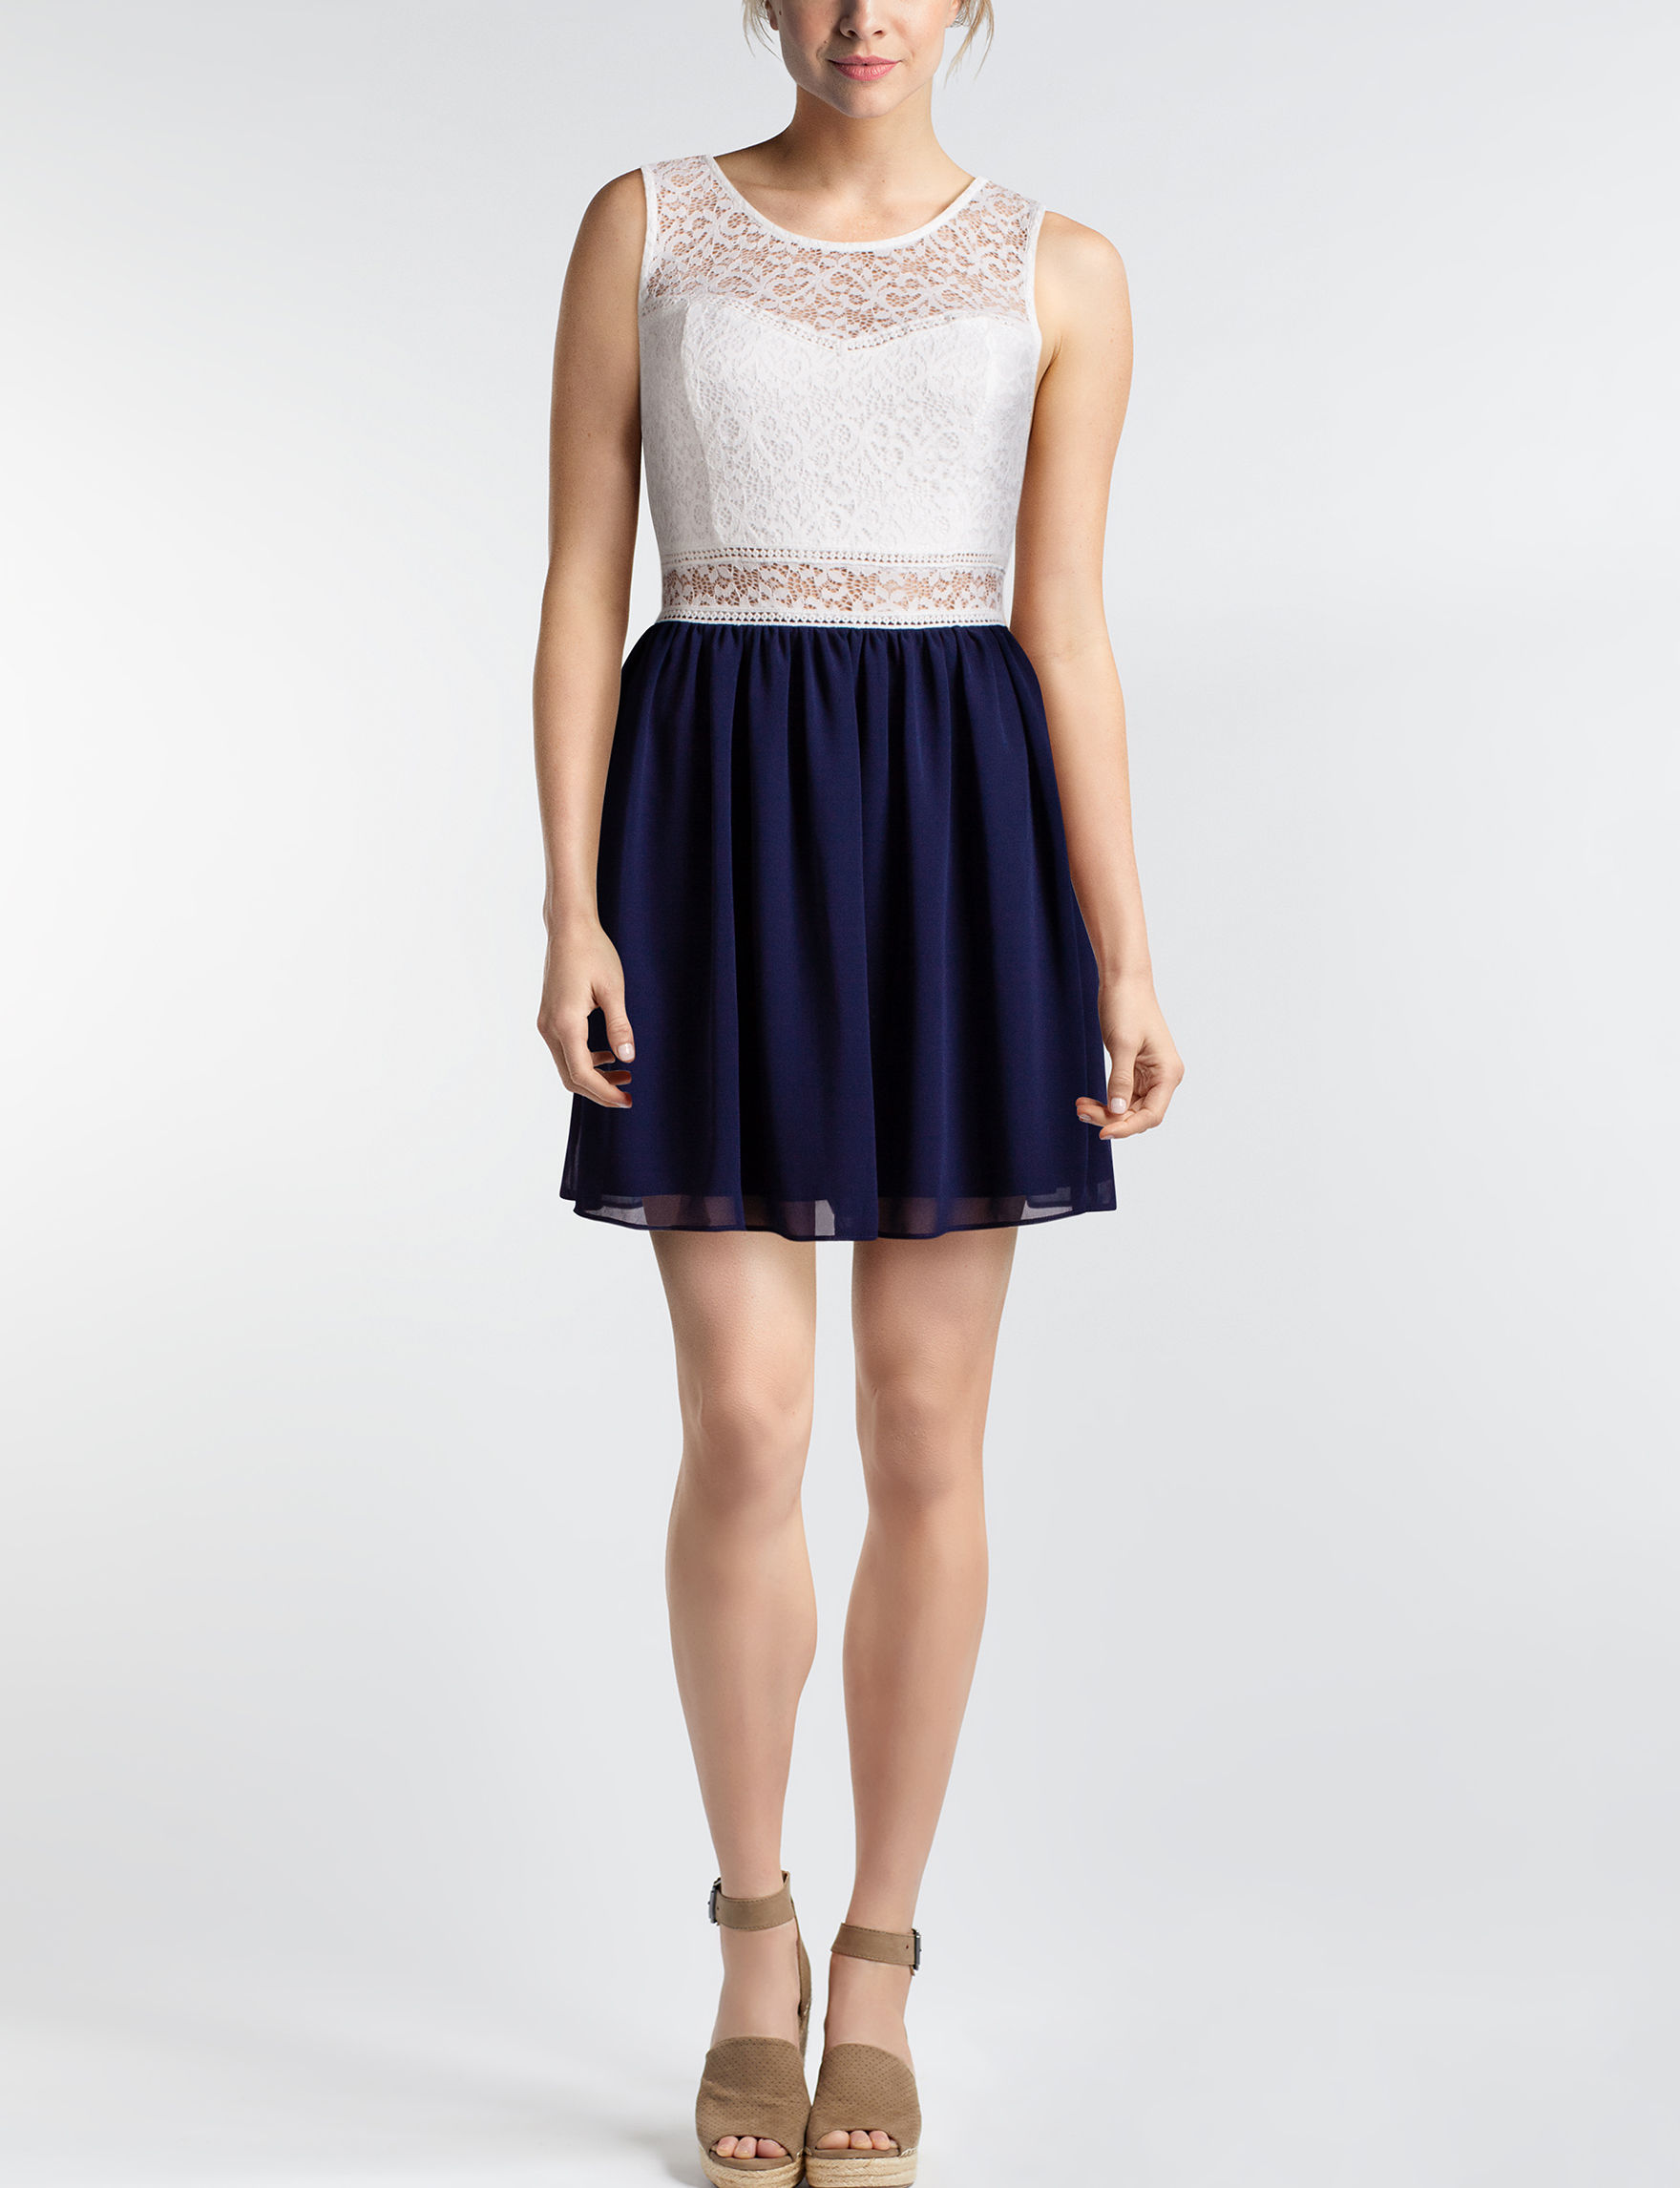 A. Byer Navy Cocktail & Party Evening & Formal Shift Dresses